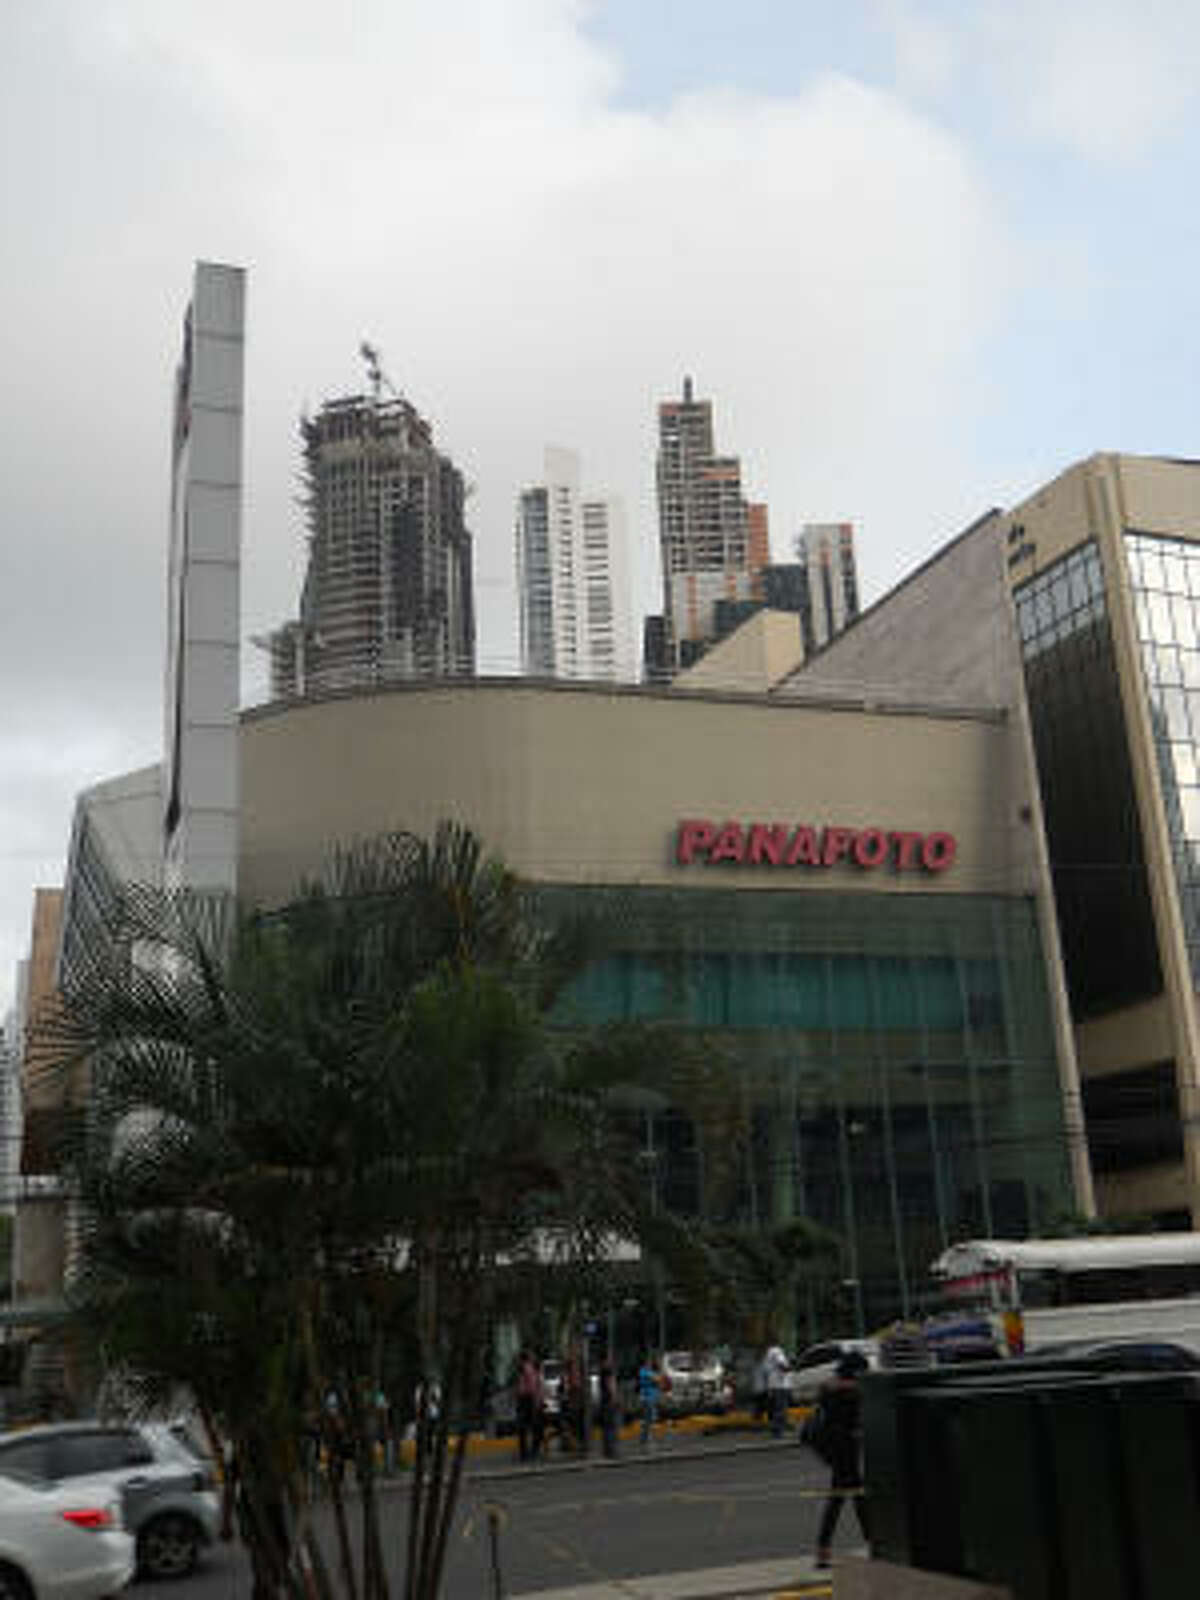 Panama City is amid a boom as condominium towers and office buildings go up. Panama and Houston traded $1.7 billion in goods and services last year, up sharply from 2009.